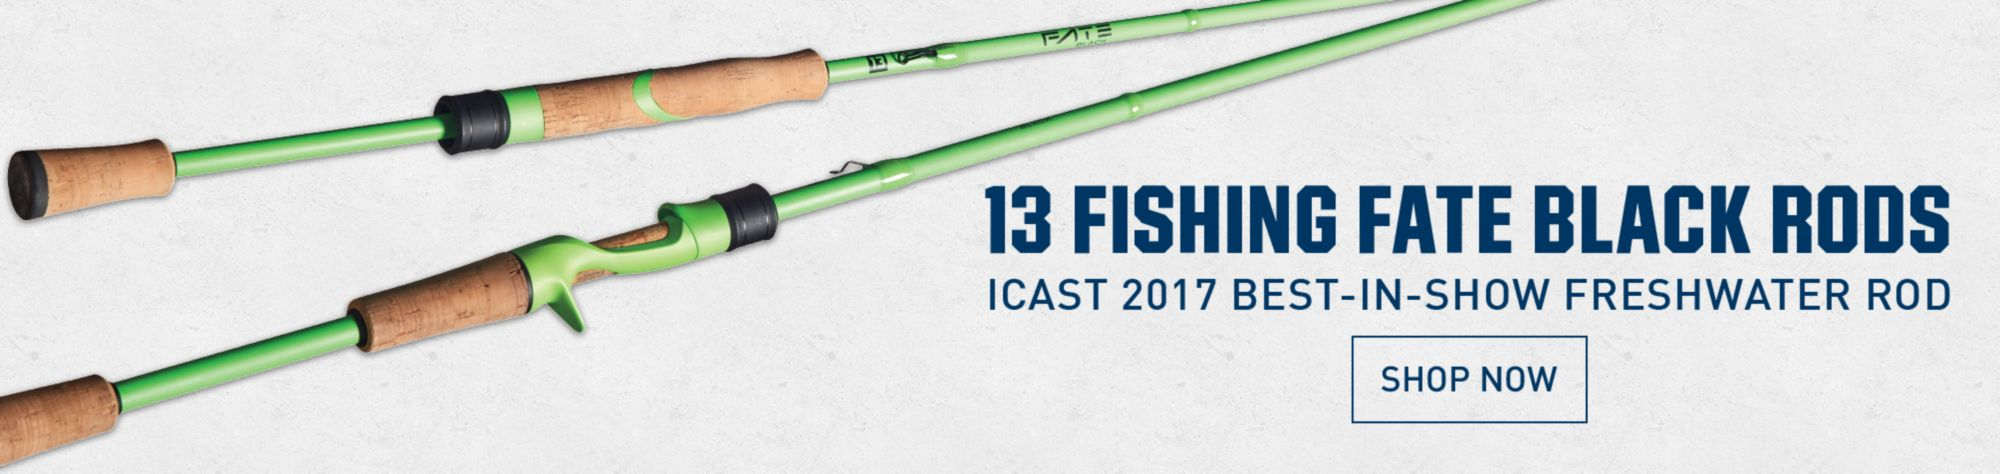 Fishing poles rods best price guarantee at dick 39 s for Dicks fishing license